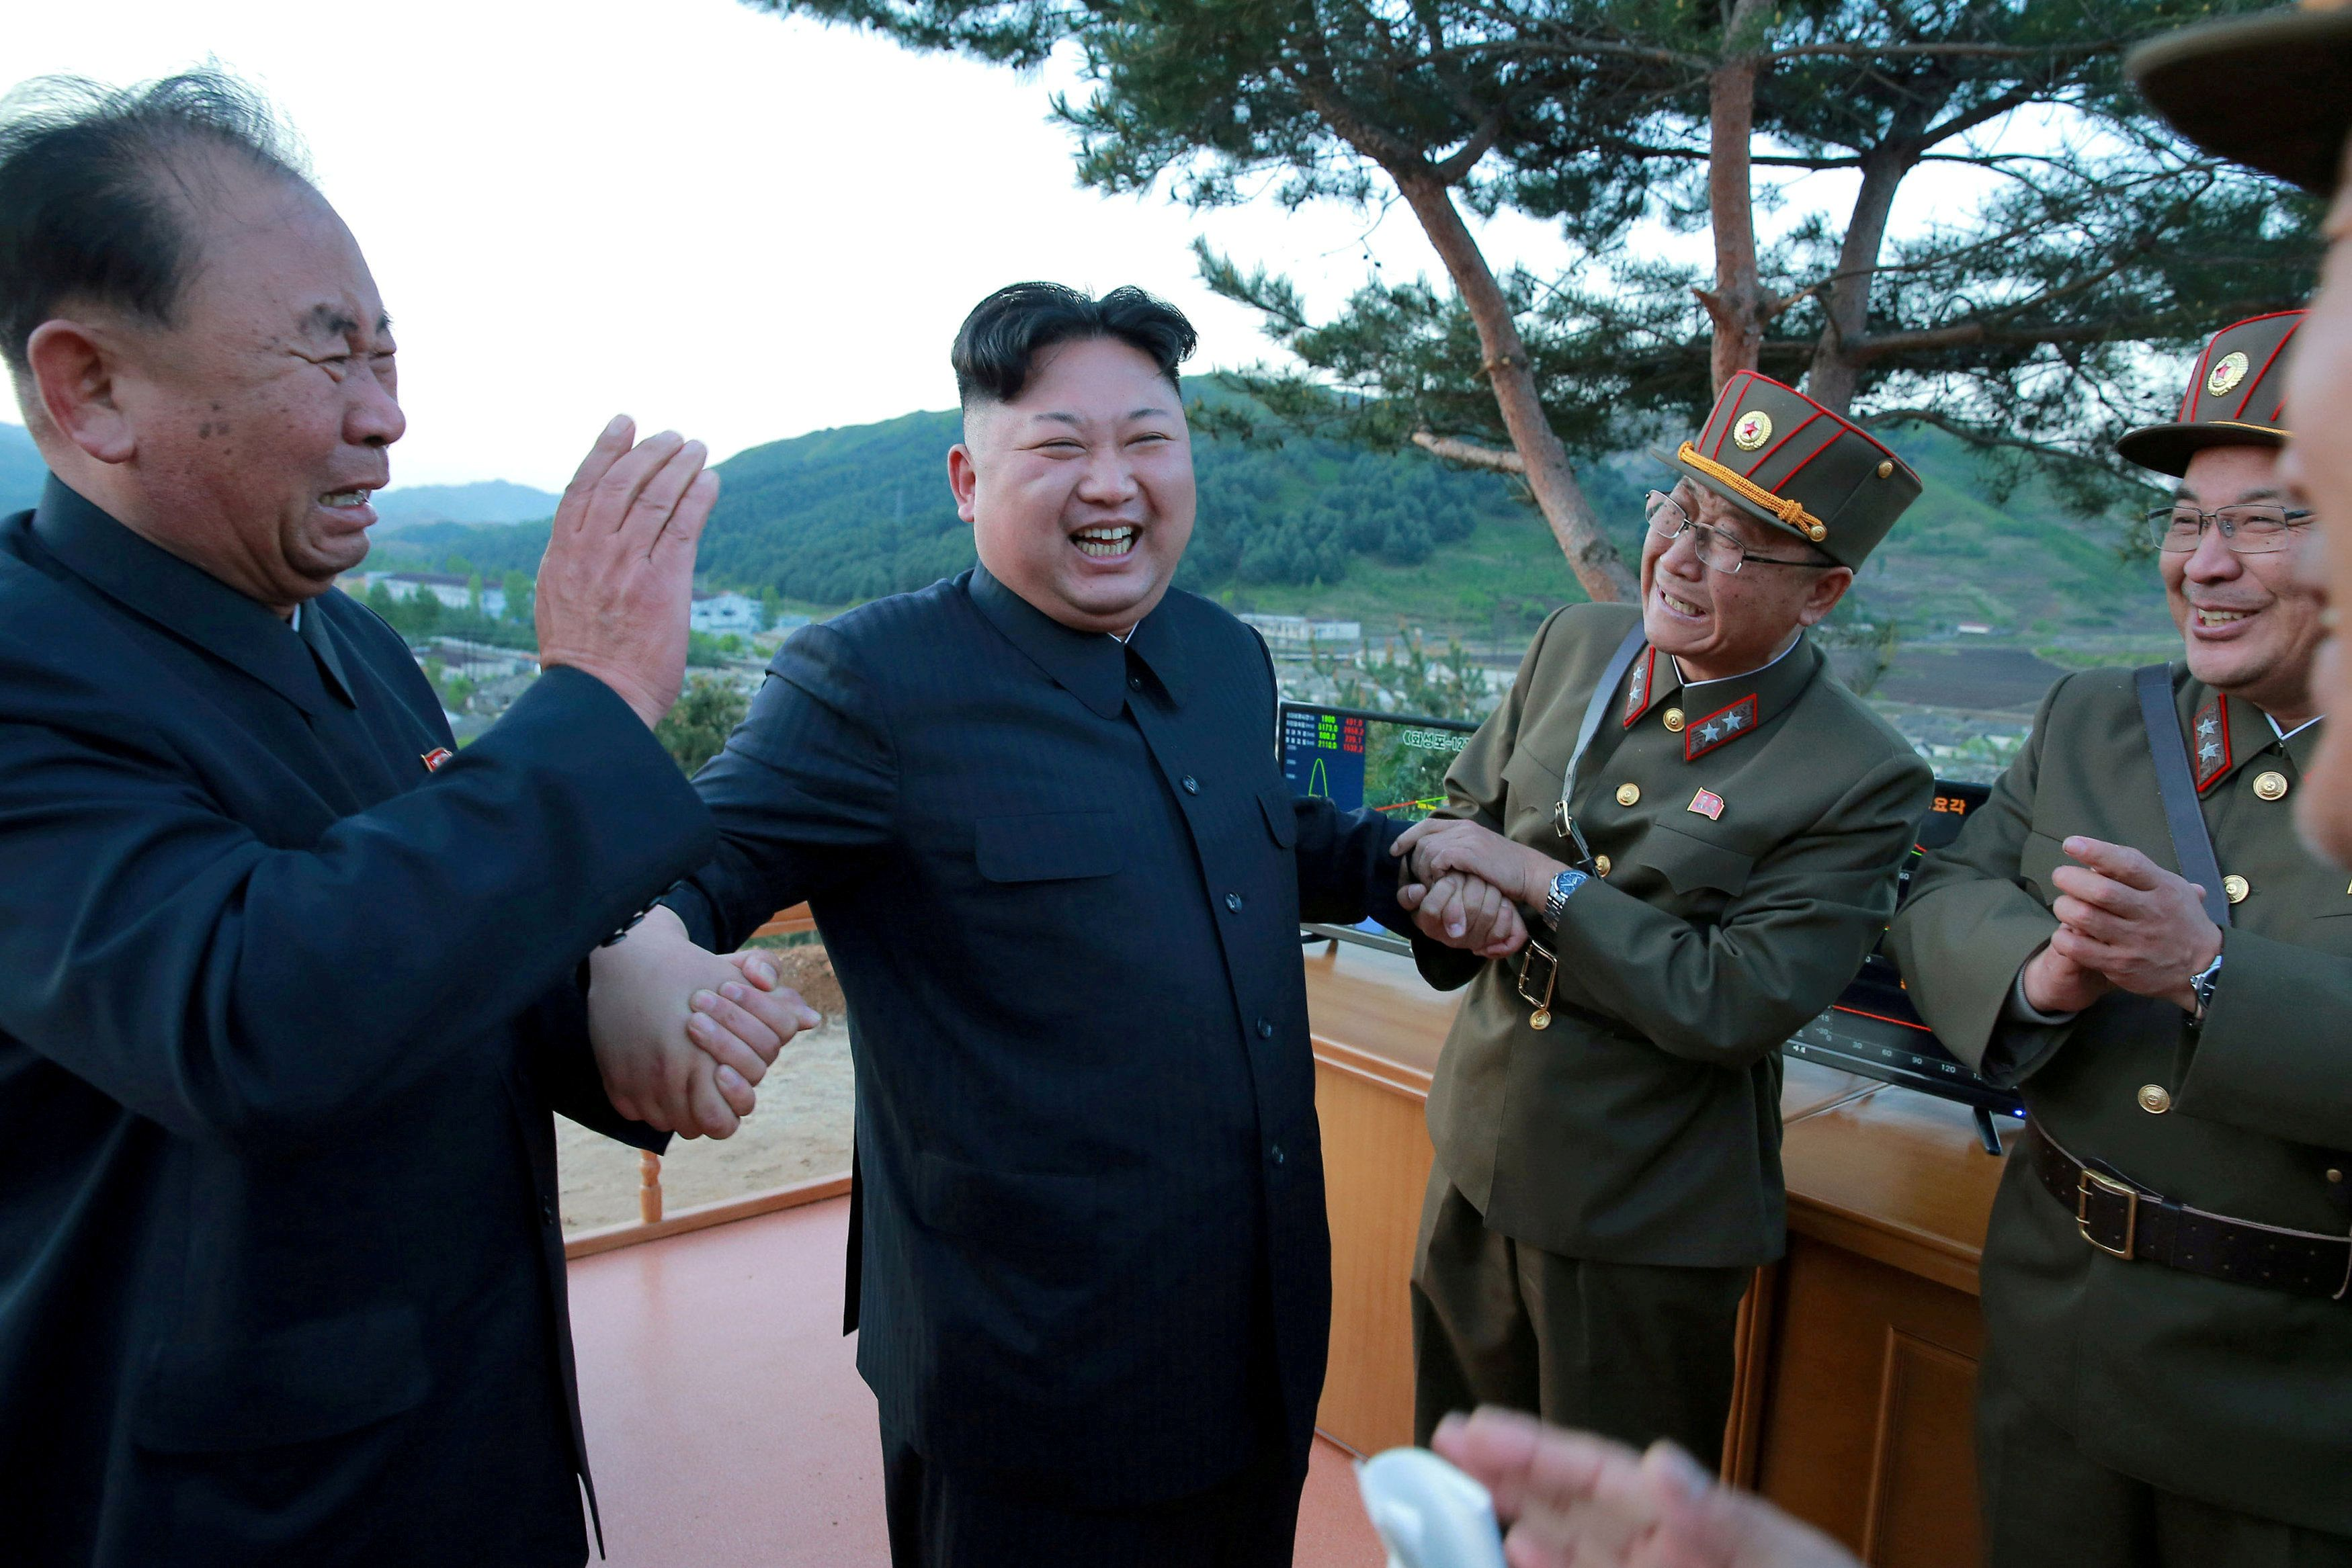 FILE PHOTO: North Korean leader Kim Jong Un reacts with Ri Pyong Chol (L) in this undated photo released by North Korea's Korean Central News Agency (KCNA) on May 15, 2017. To match Insight NORTHKOREA-KIMJONGUN/      KCNA/via REUTERS/File Photo     ATTENTION EDITORS - THIS PICTURE WAS PROVIDED BY A THIRD PARTY. REUTERS IS UNABLE TO INDEPENDENTLY VERIFY THE AUTHENTICITY, CONTENT, LOCATION OR DATE OF THIS IMAGE. NO THIRD PARTY SALES.  SOUTH KOREA OUT.